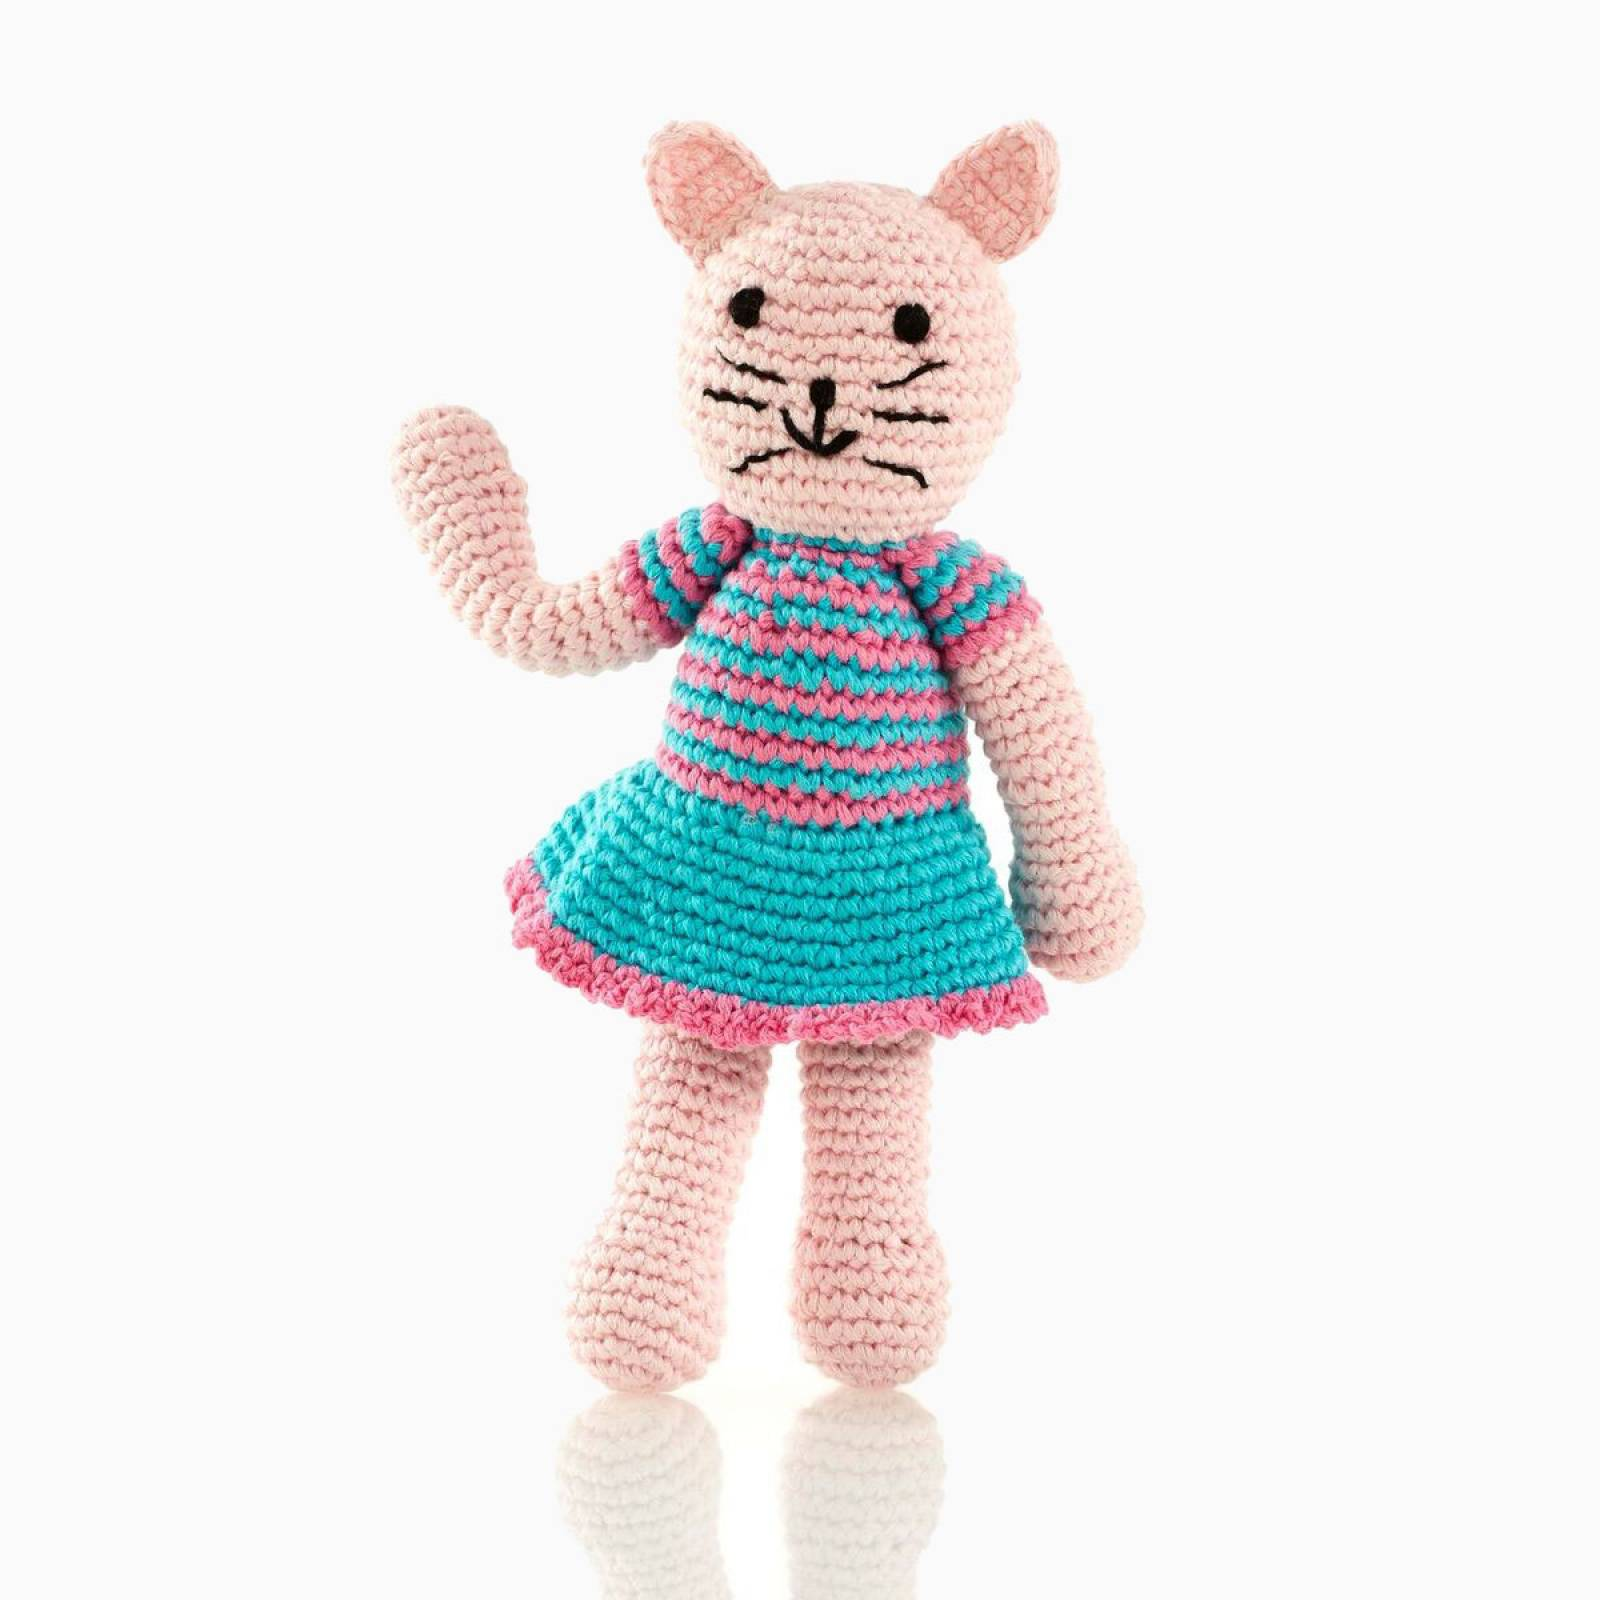 Knitted Crochet Cat Girl Baby Rattle by Pebble 0+